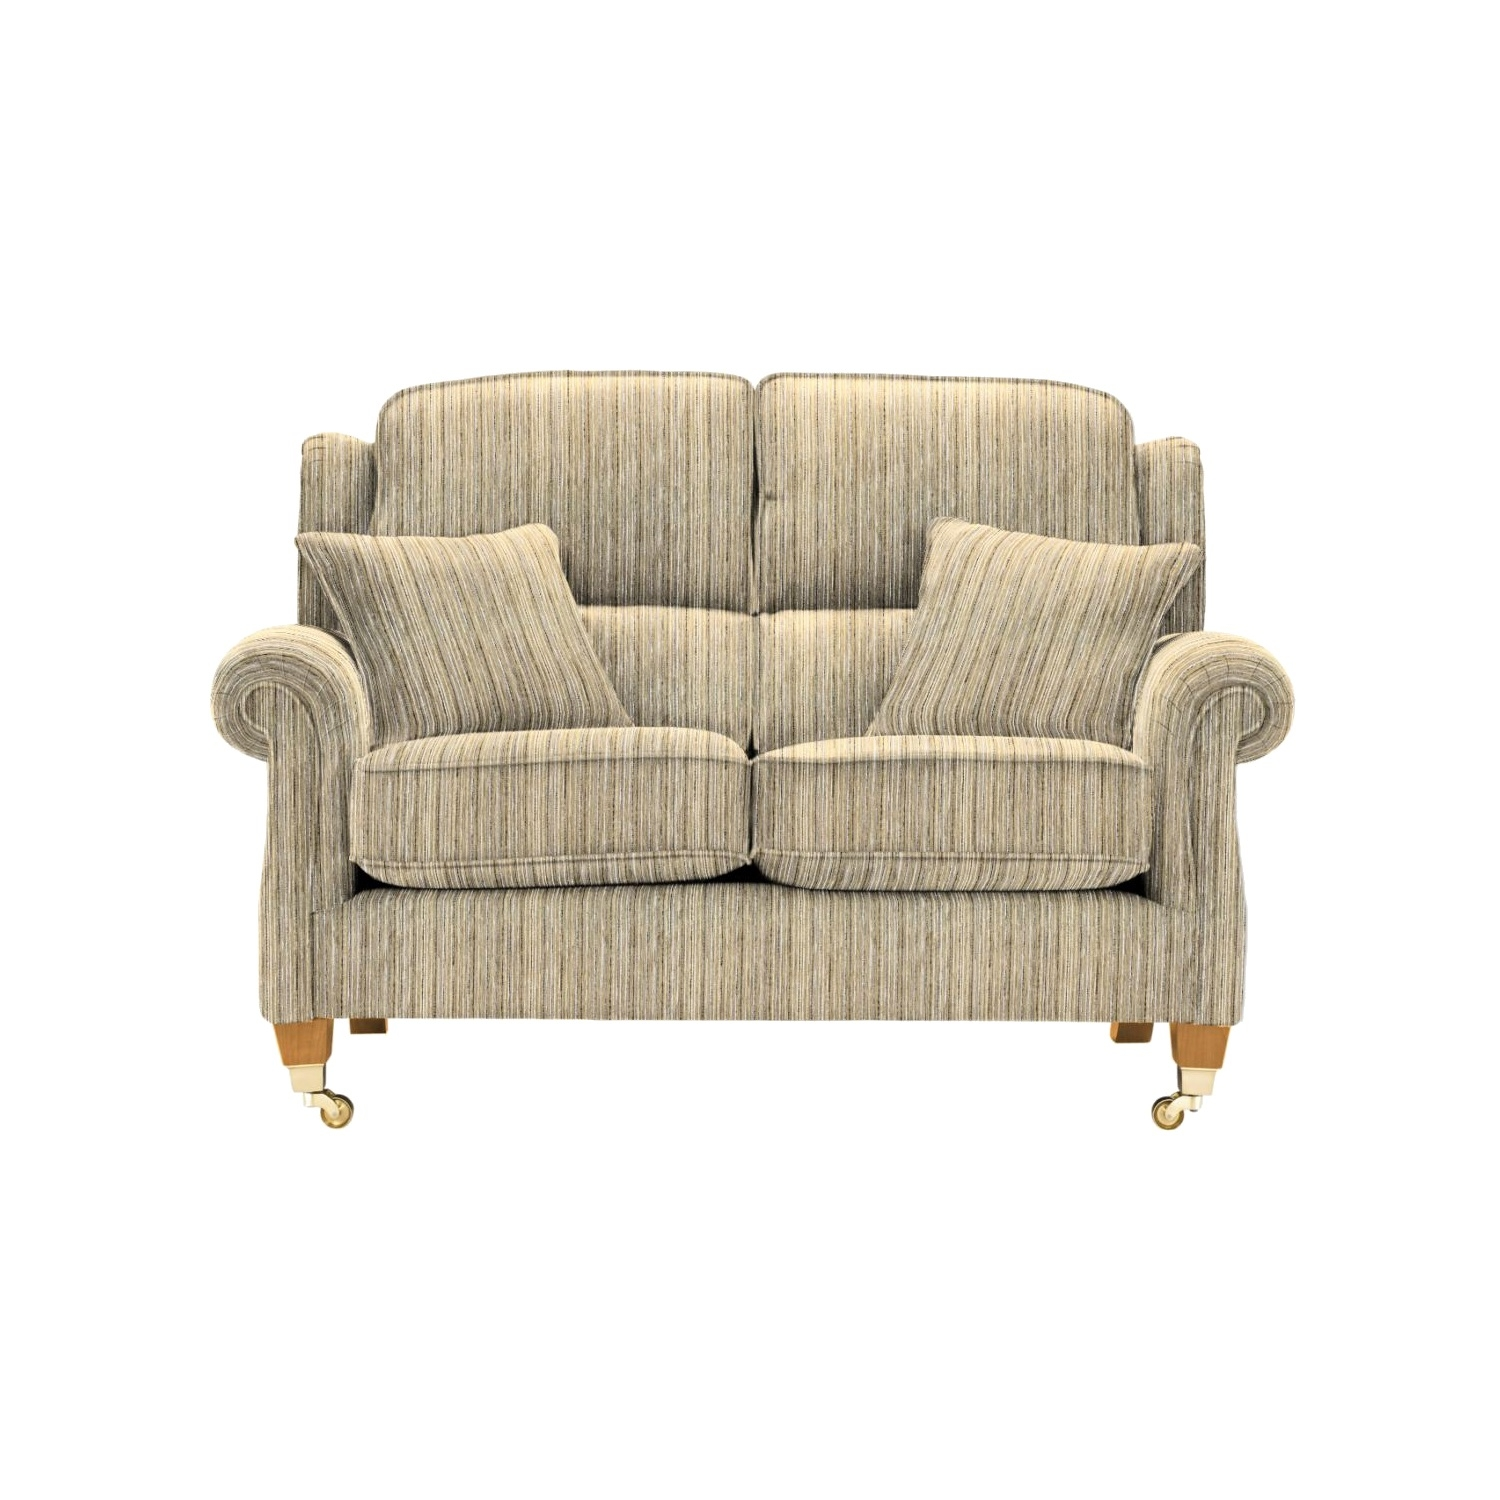 Image of Parker Knoll Henley 2 Seater Fabric Sofa